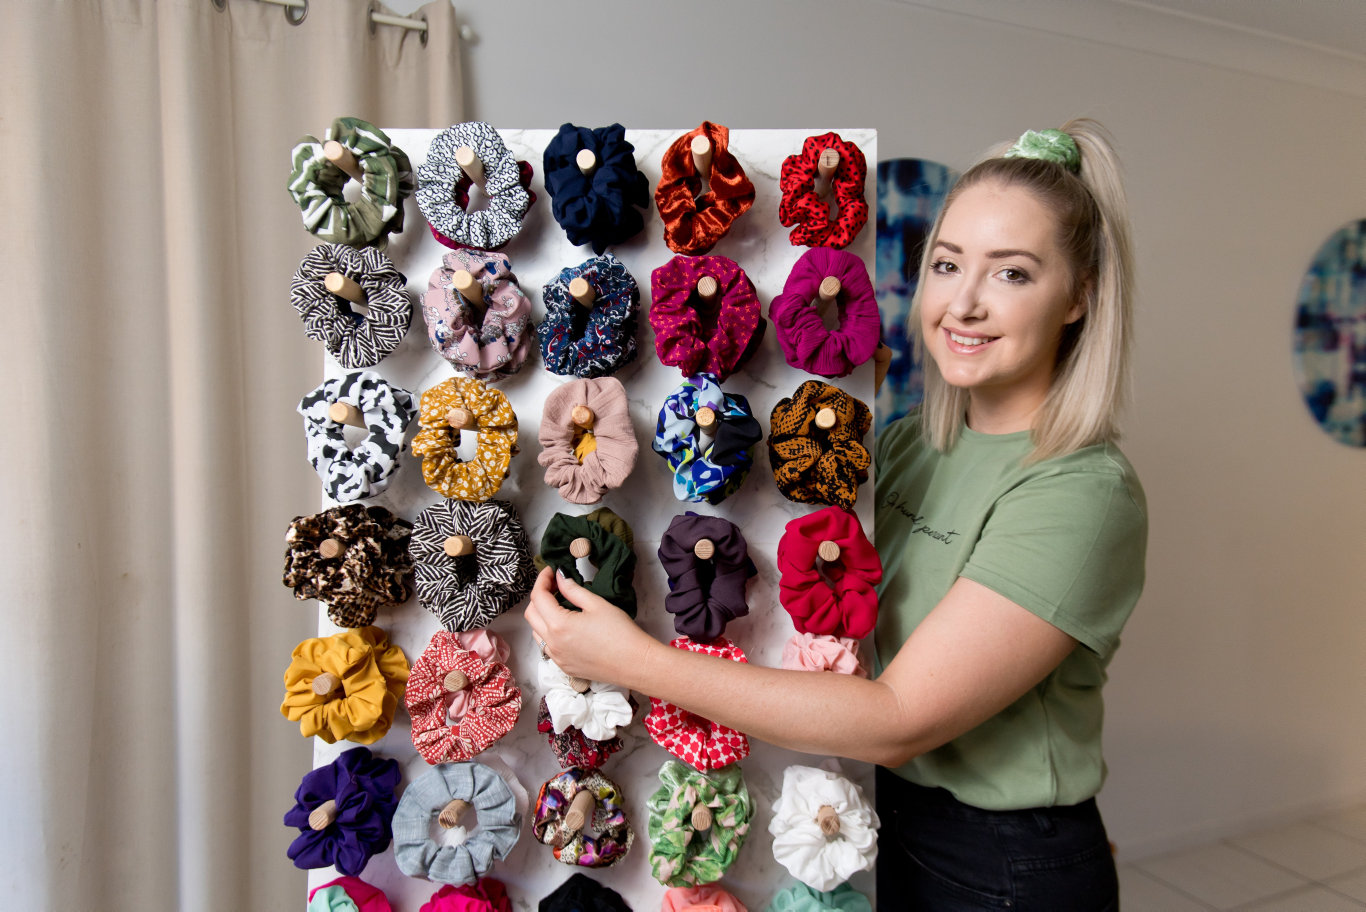 Misteeq Fashion owner Alyce Gallagher with some of the scrunchies she makes.